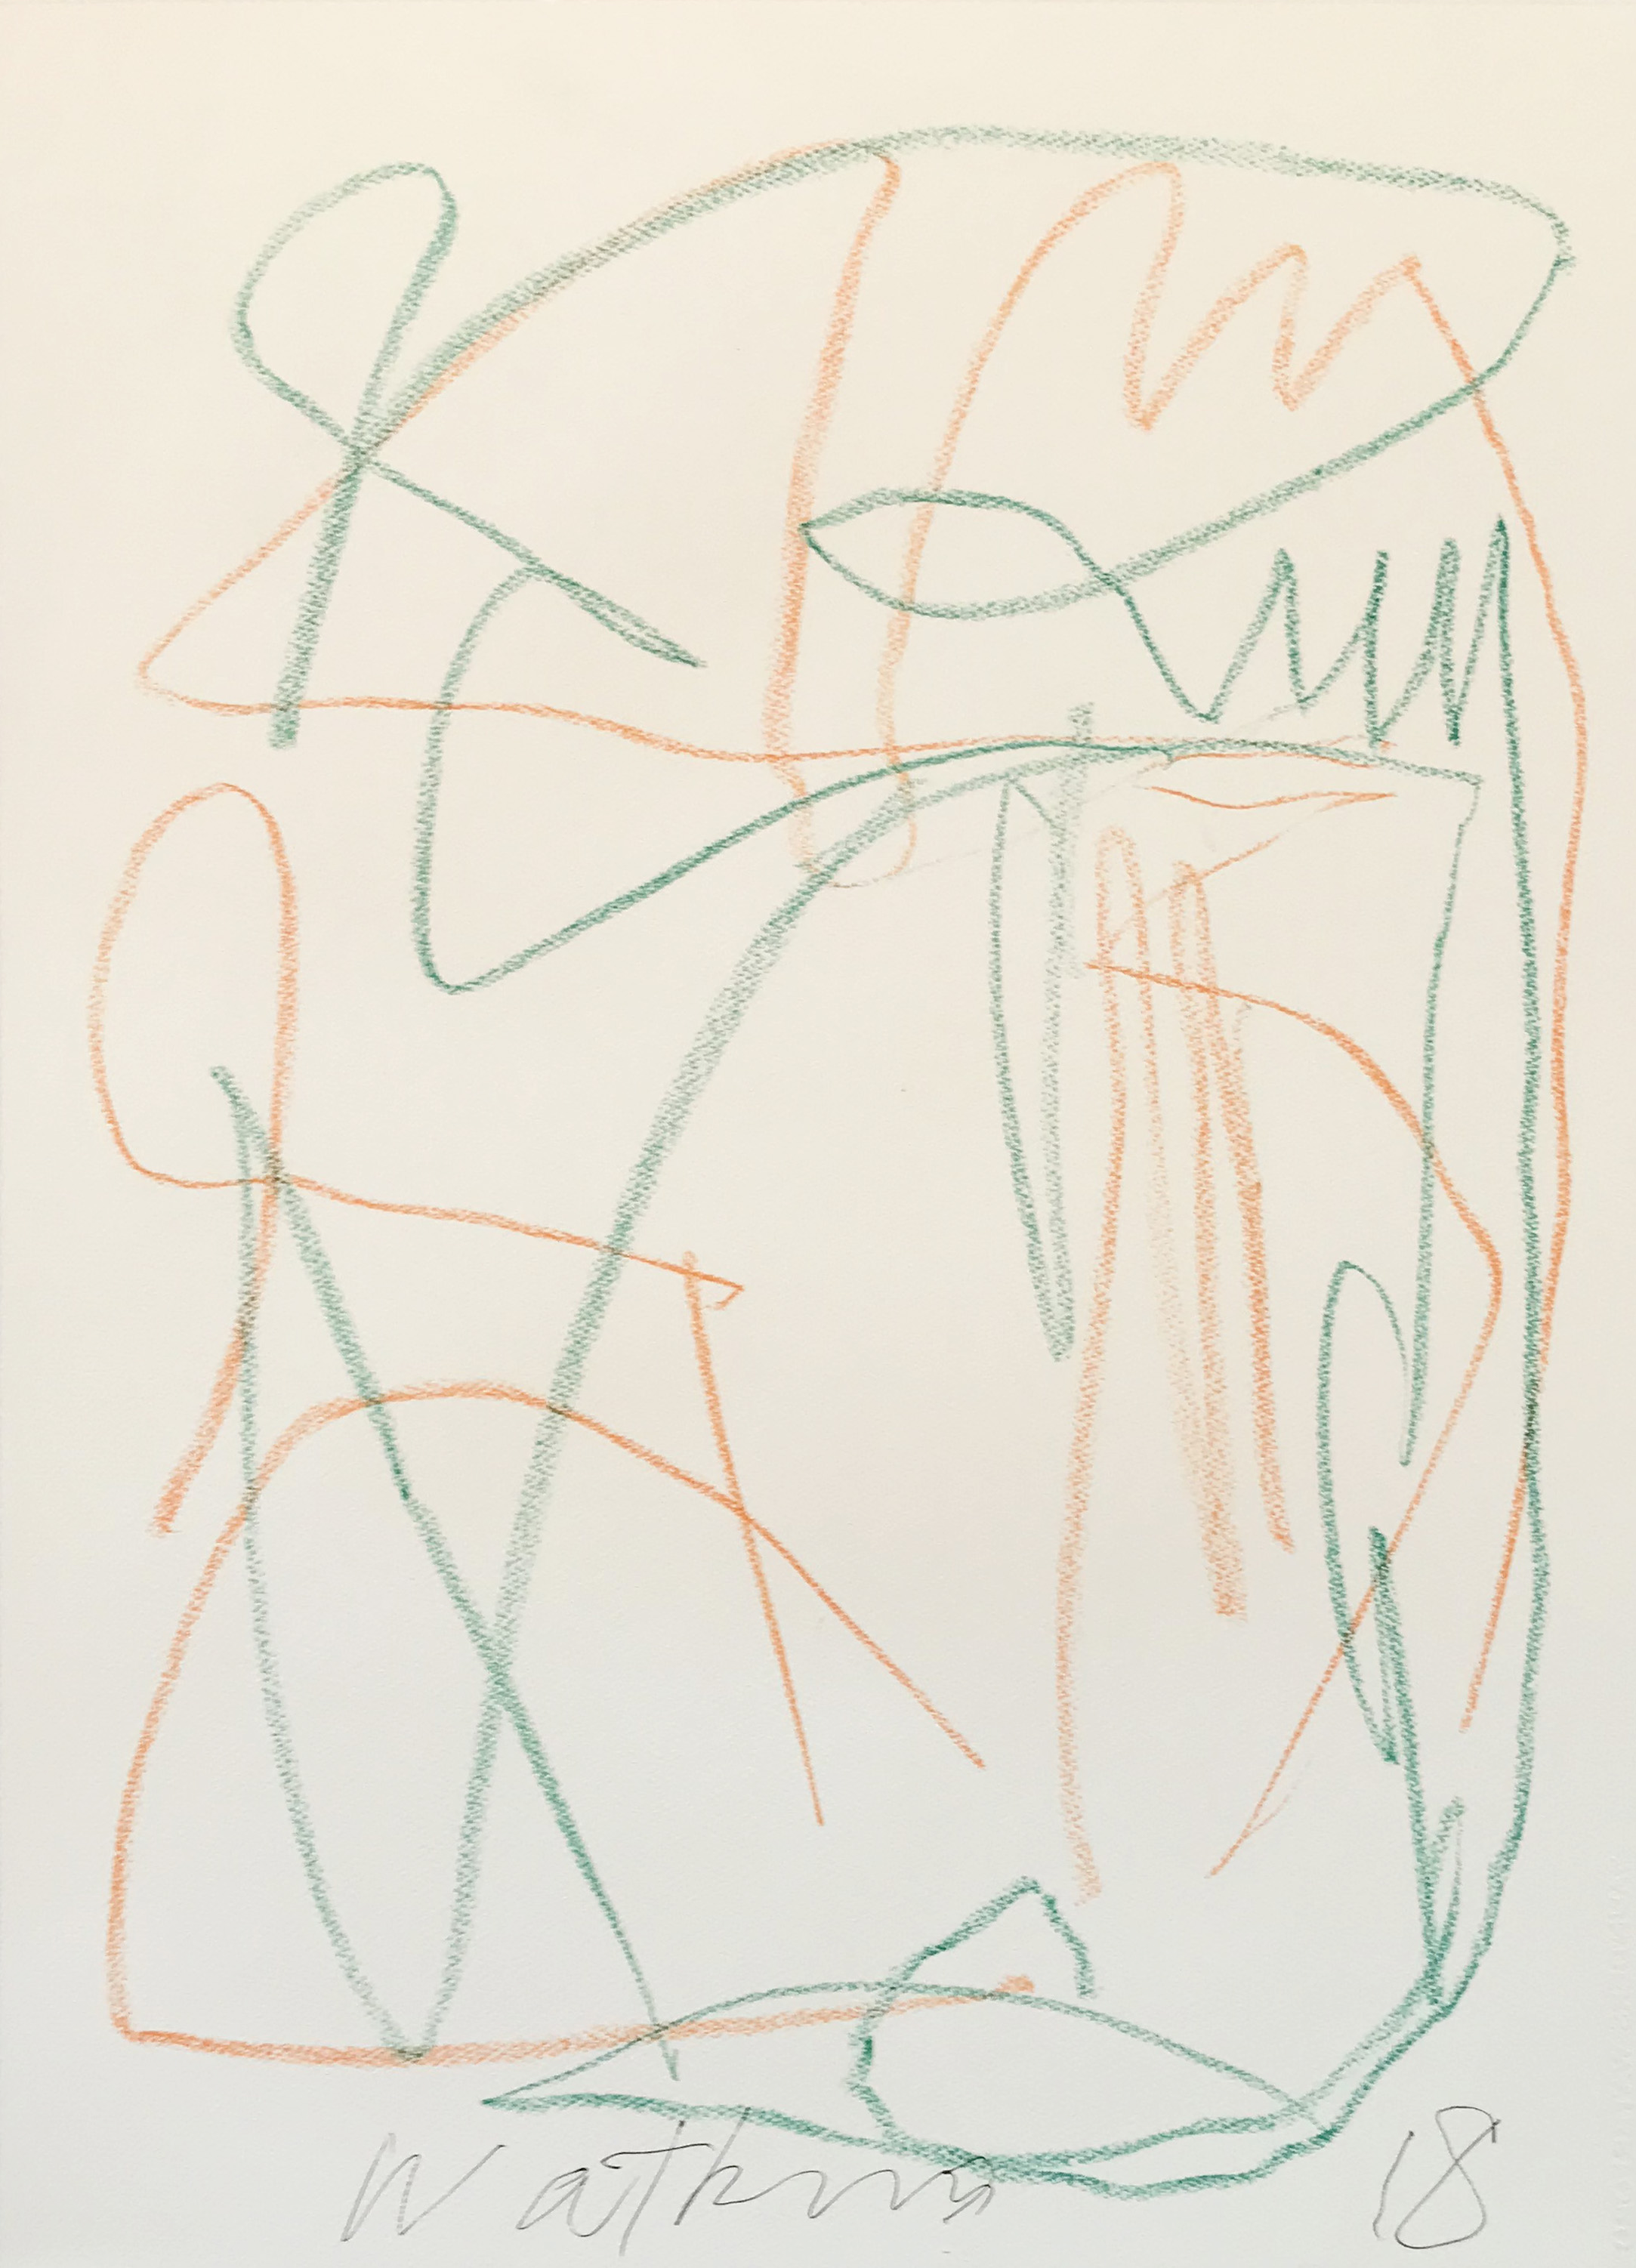 DICK WATKINS  Untitled drawing 03 , 2018 pastel on 300gsm paper 76 x 56 cm